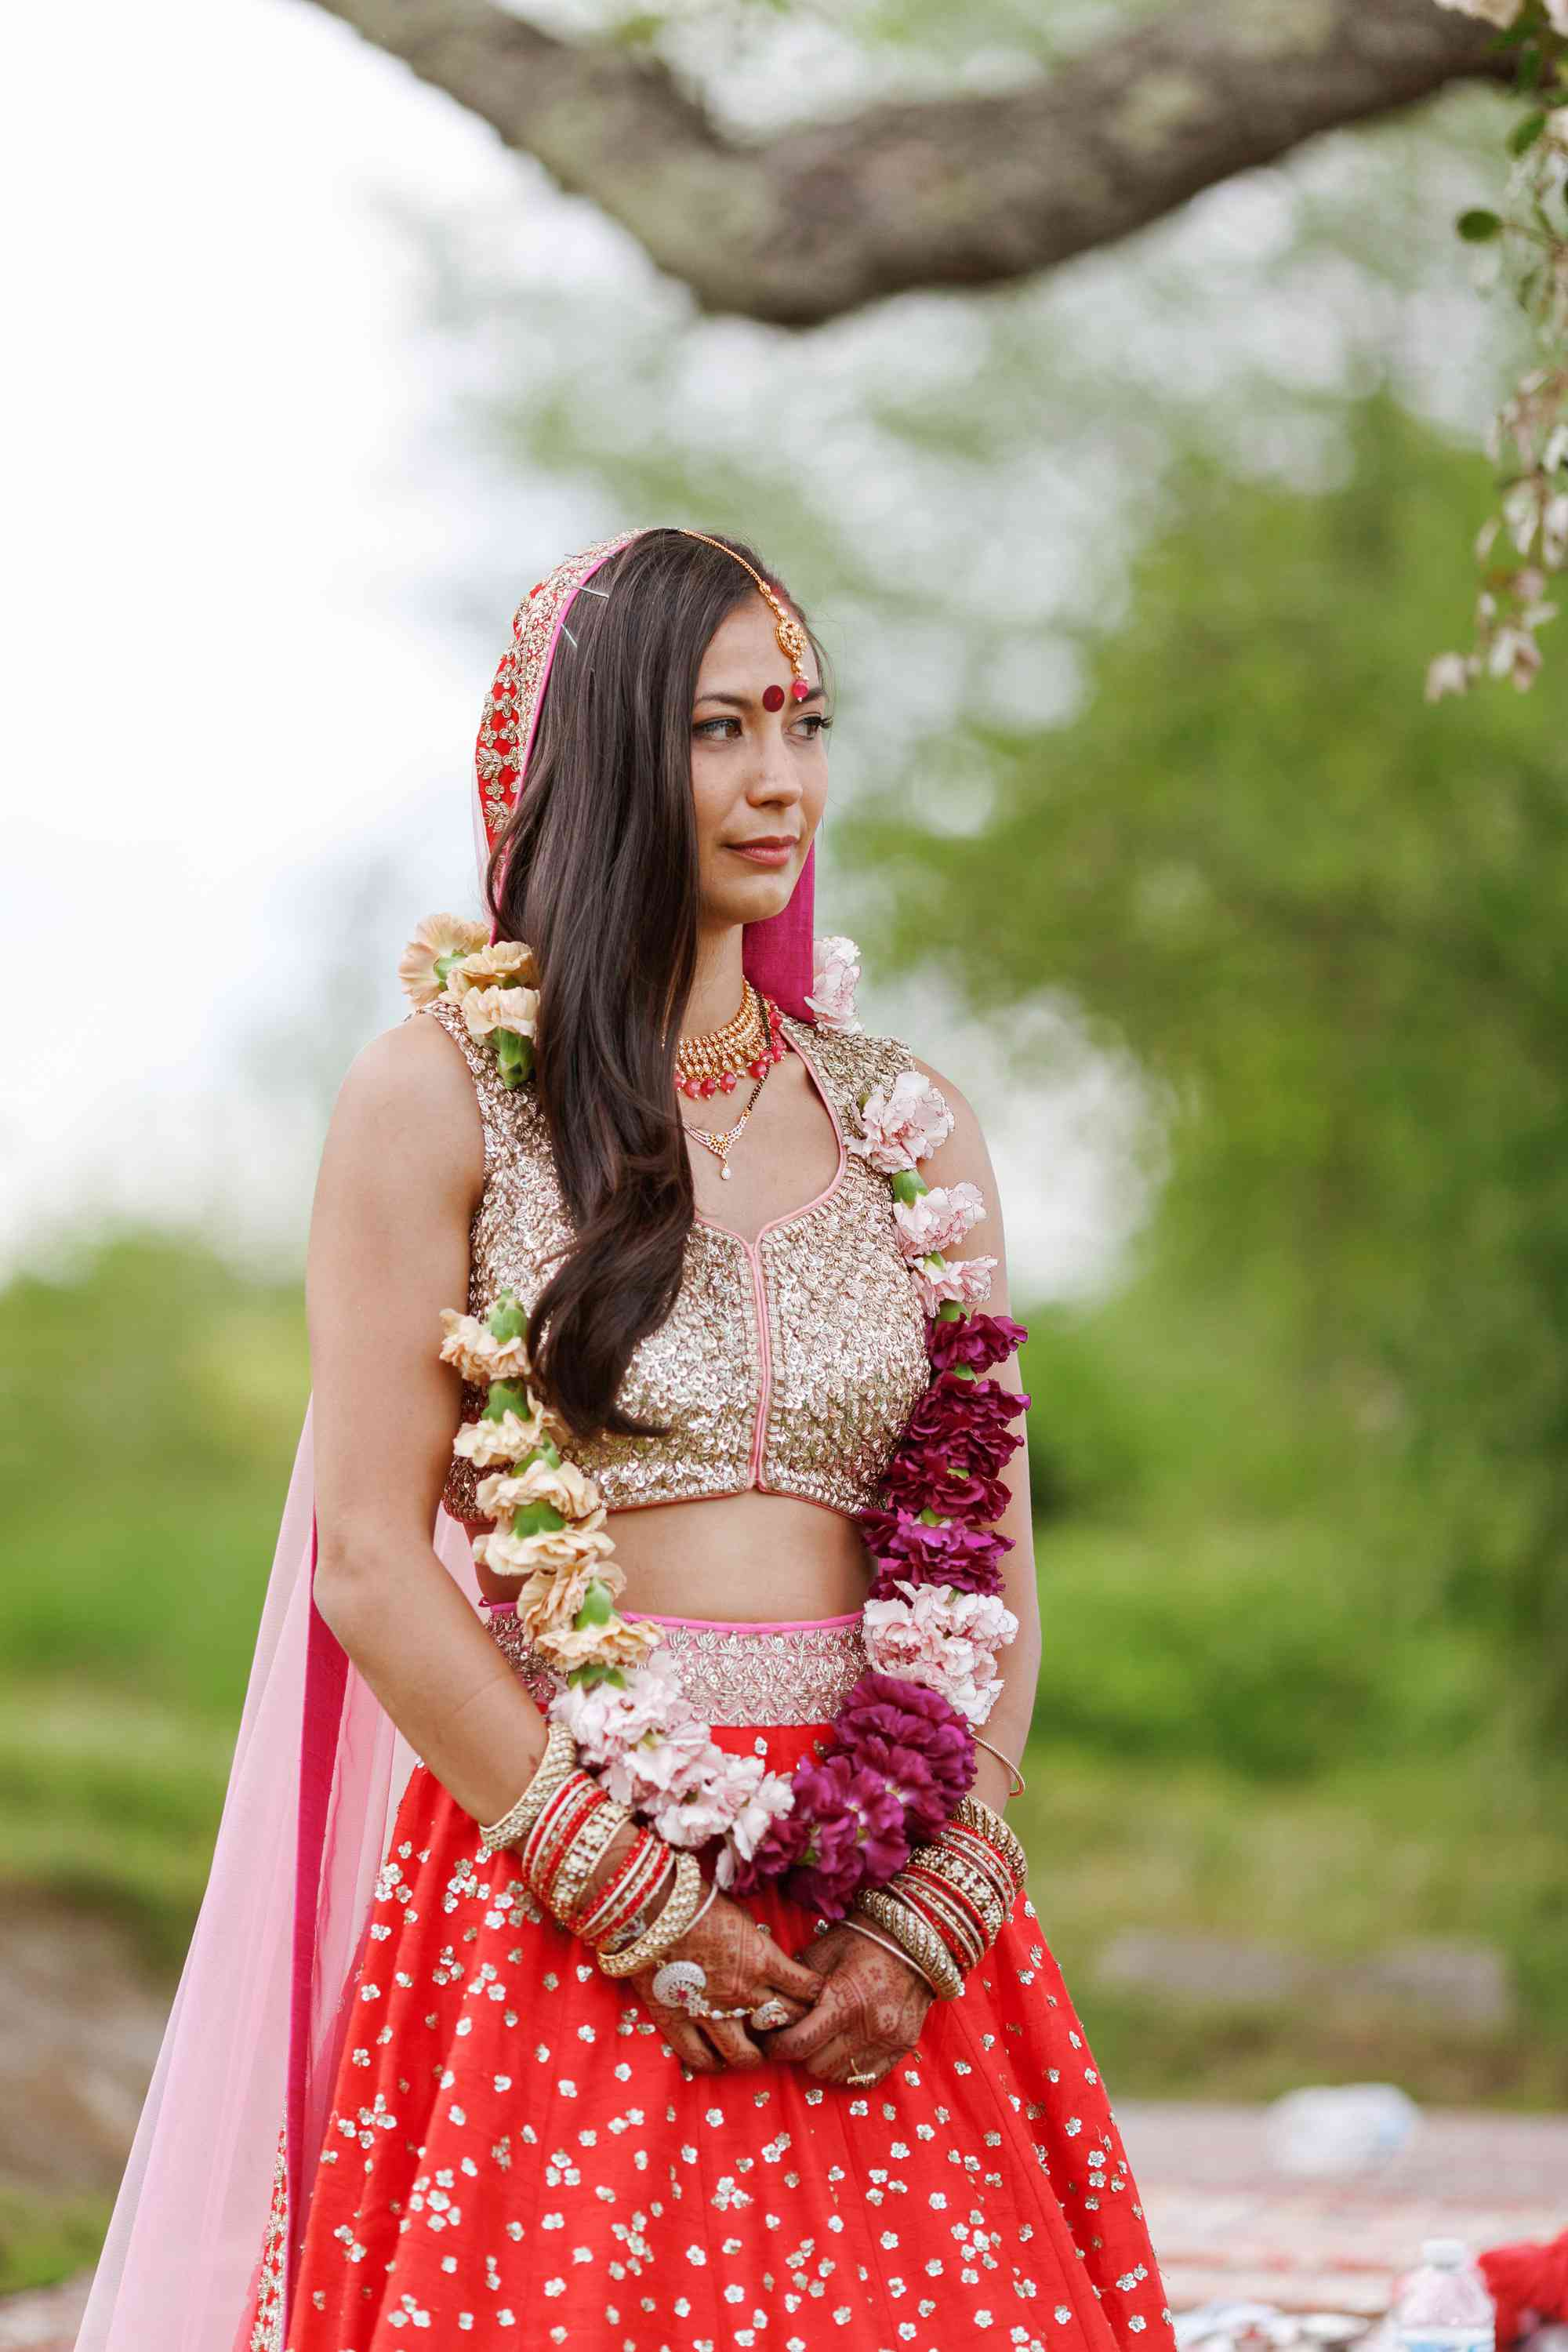 Bride in traditional lengha during ceremony